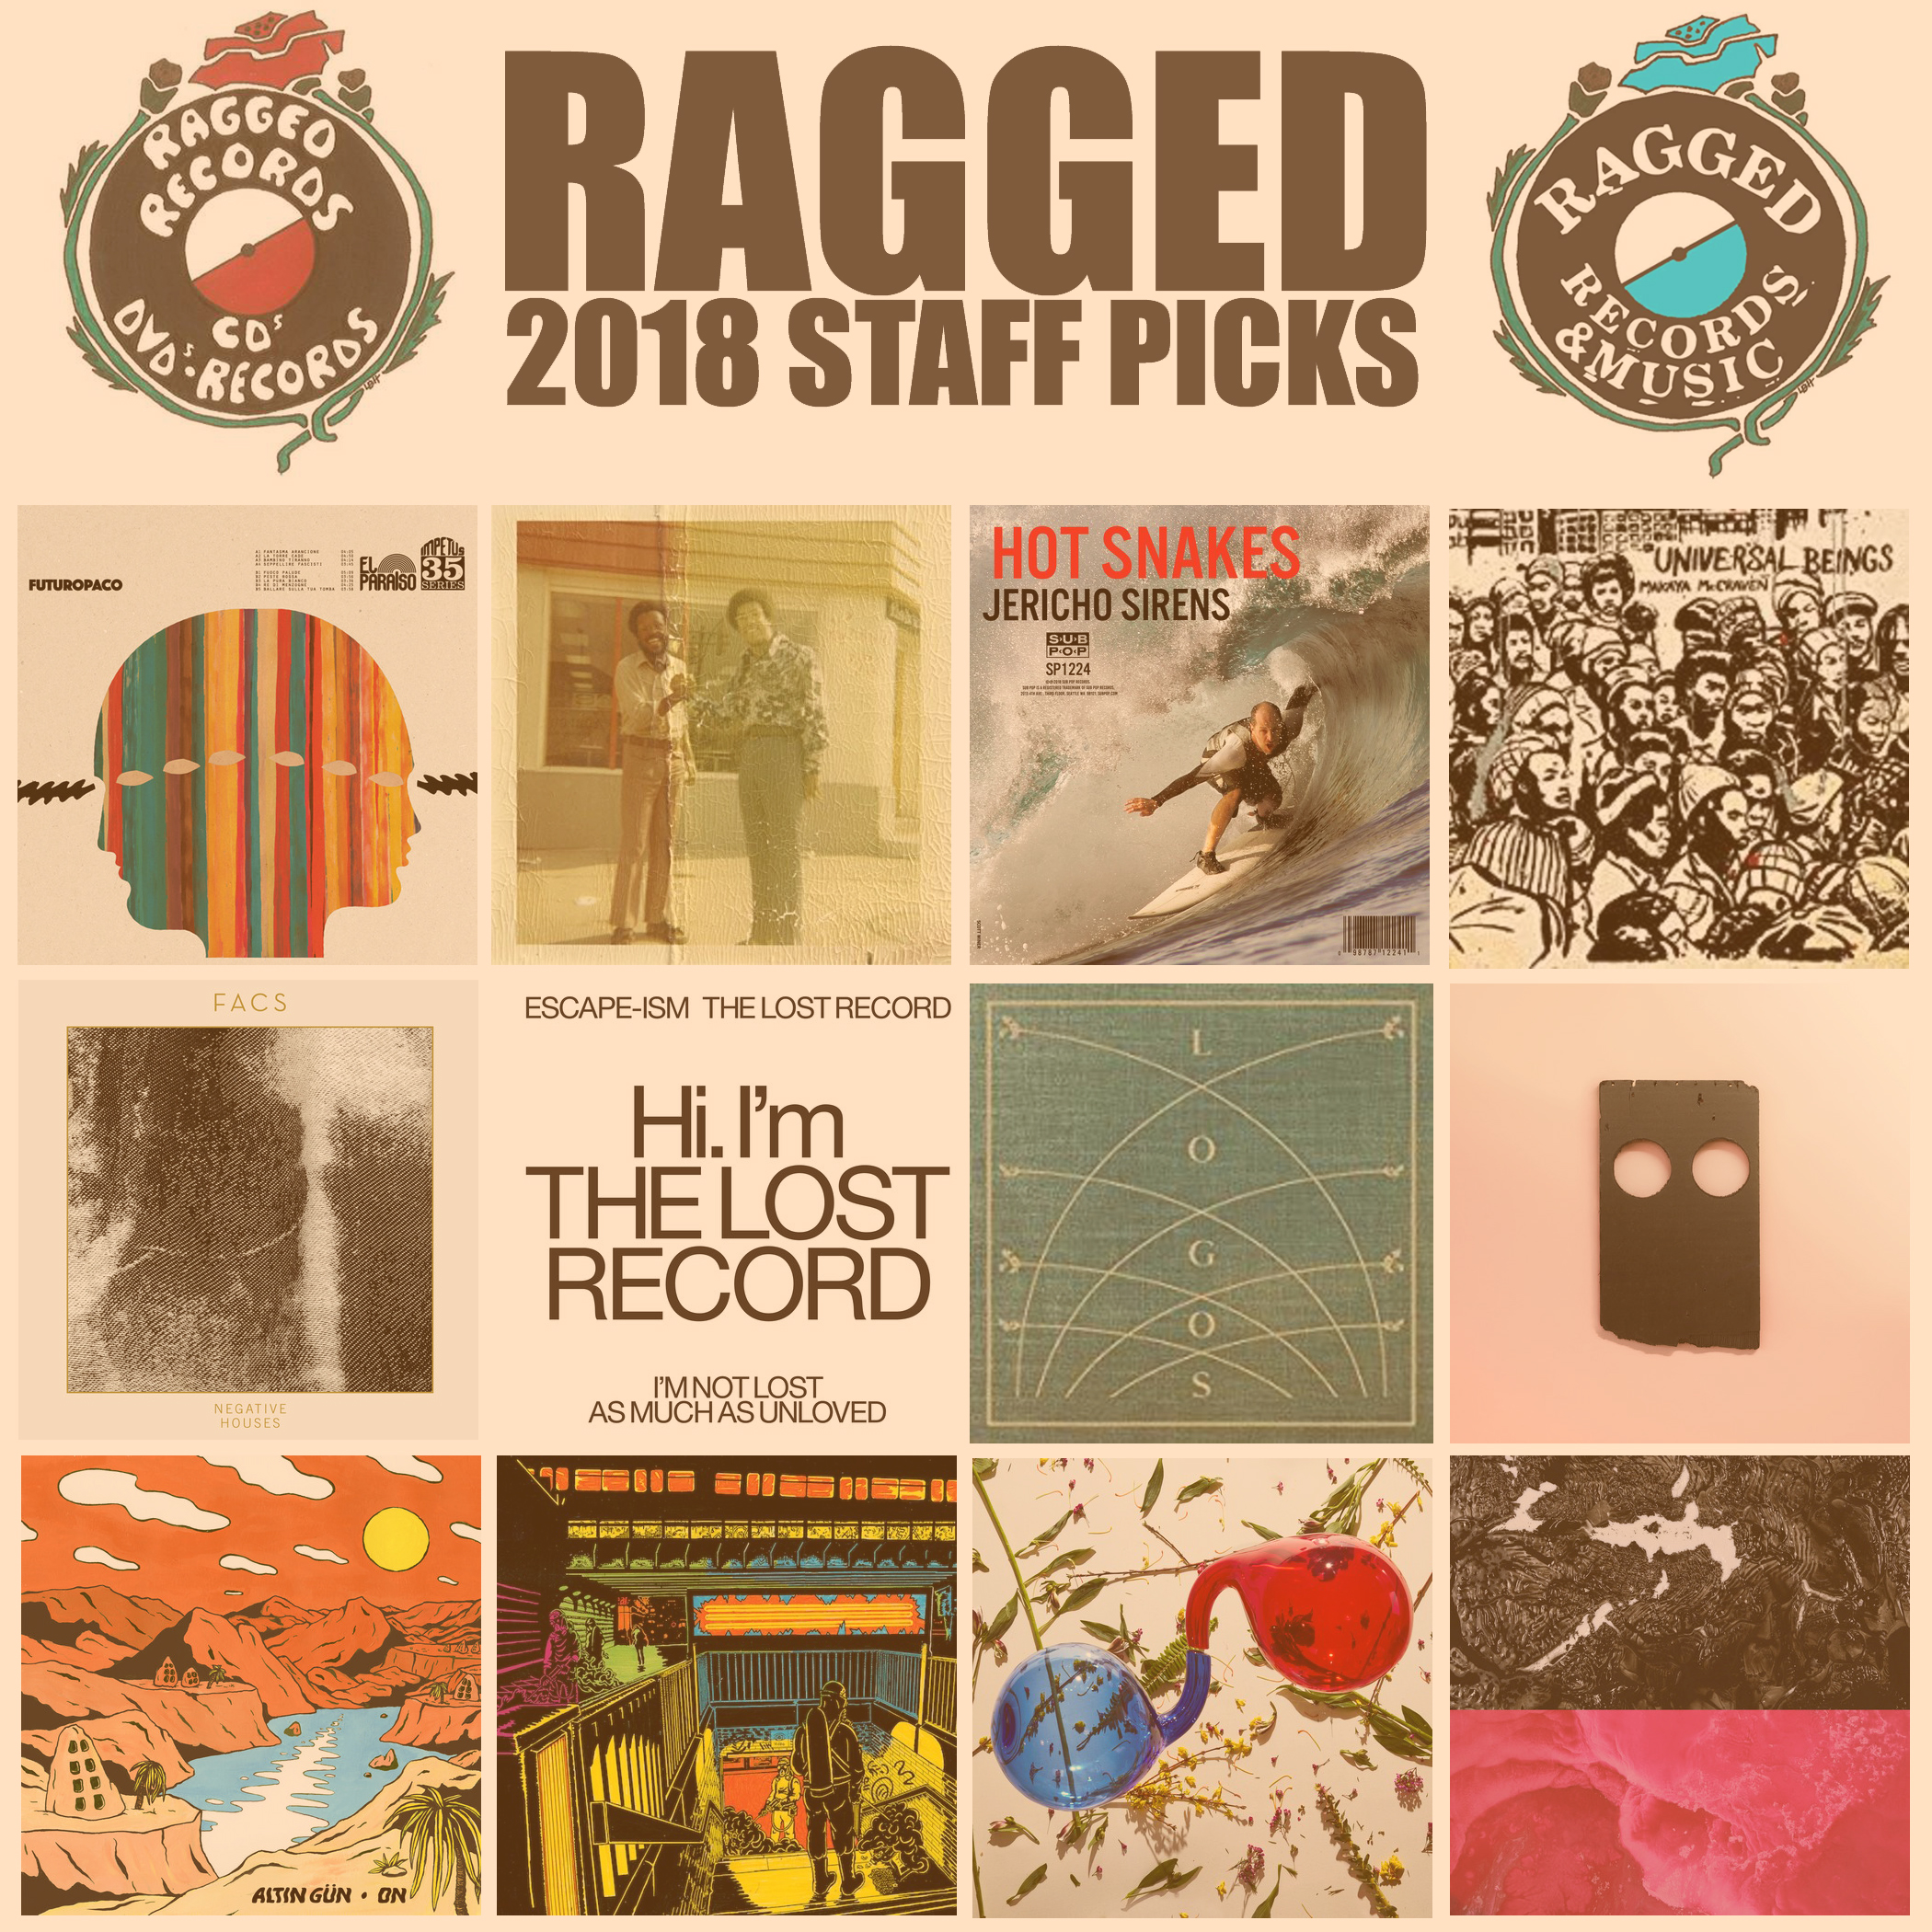 Ragged Staff Picks 2018.jpg